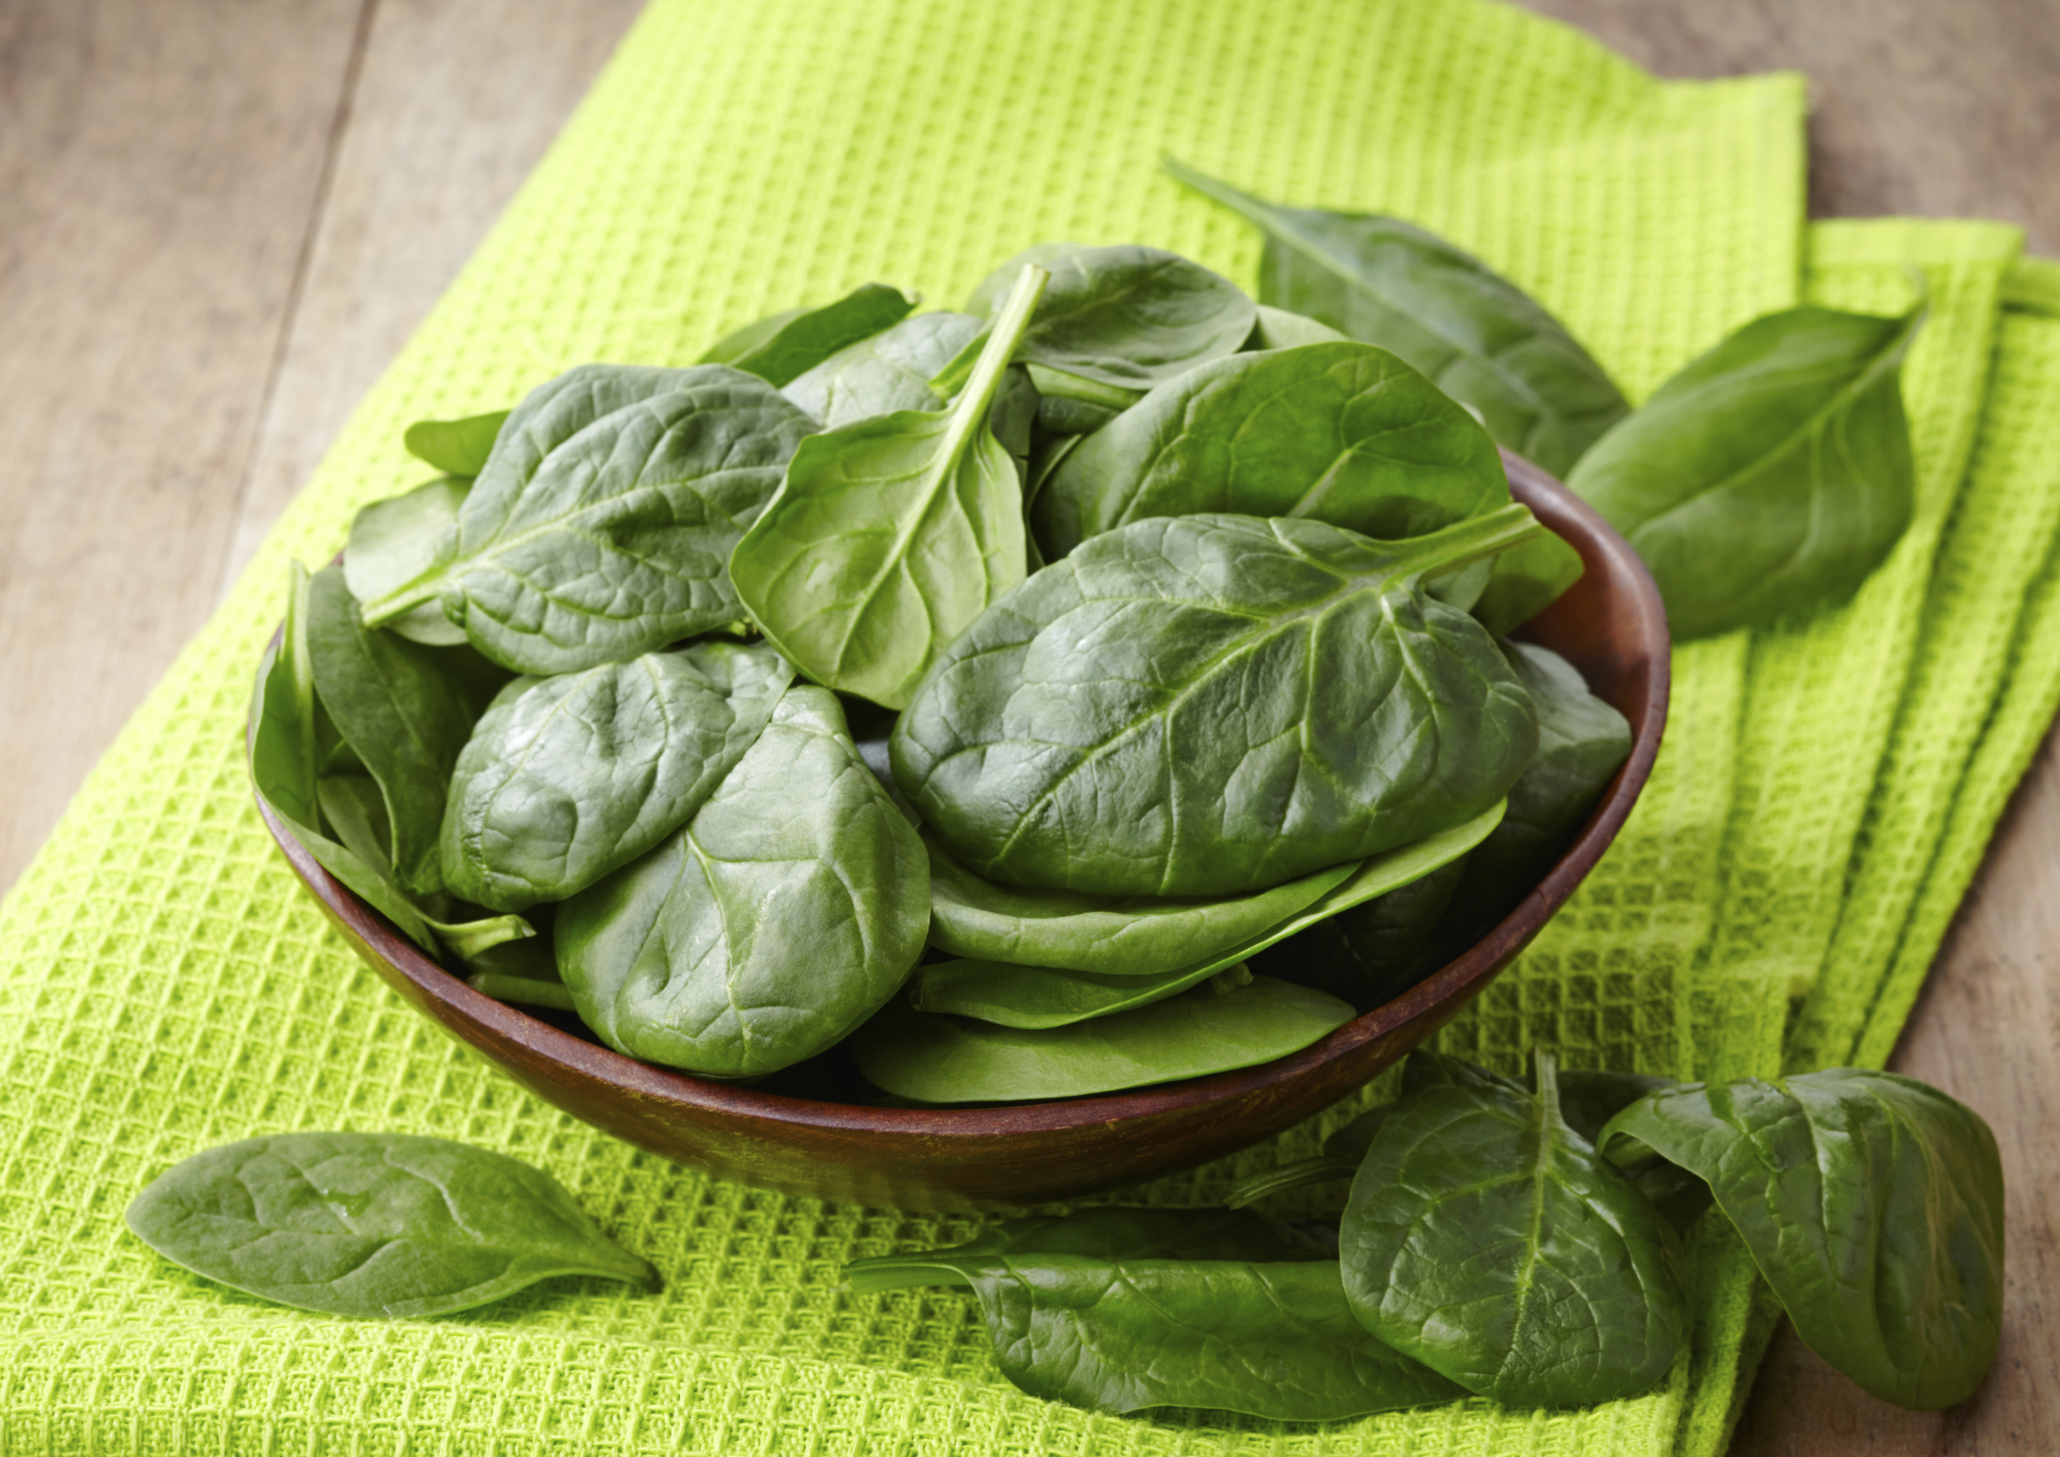 Spinach give you gas